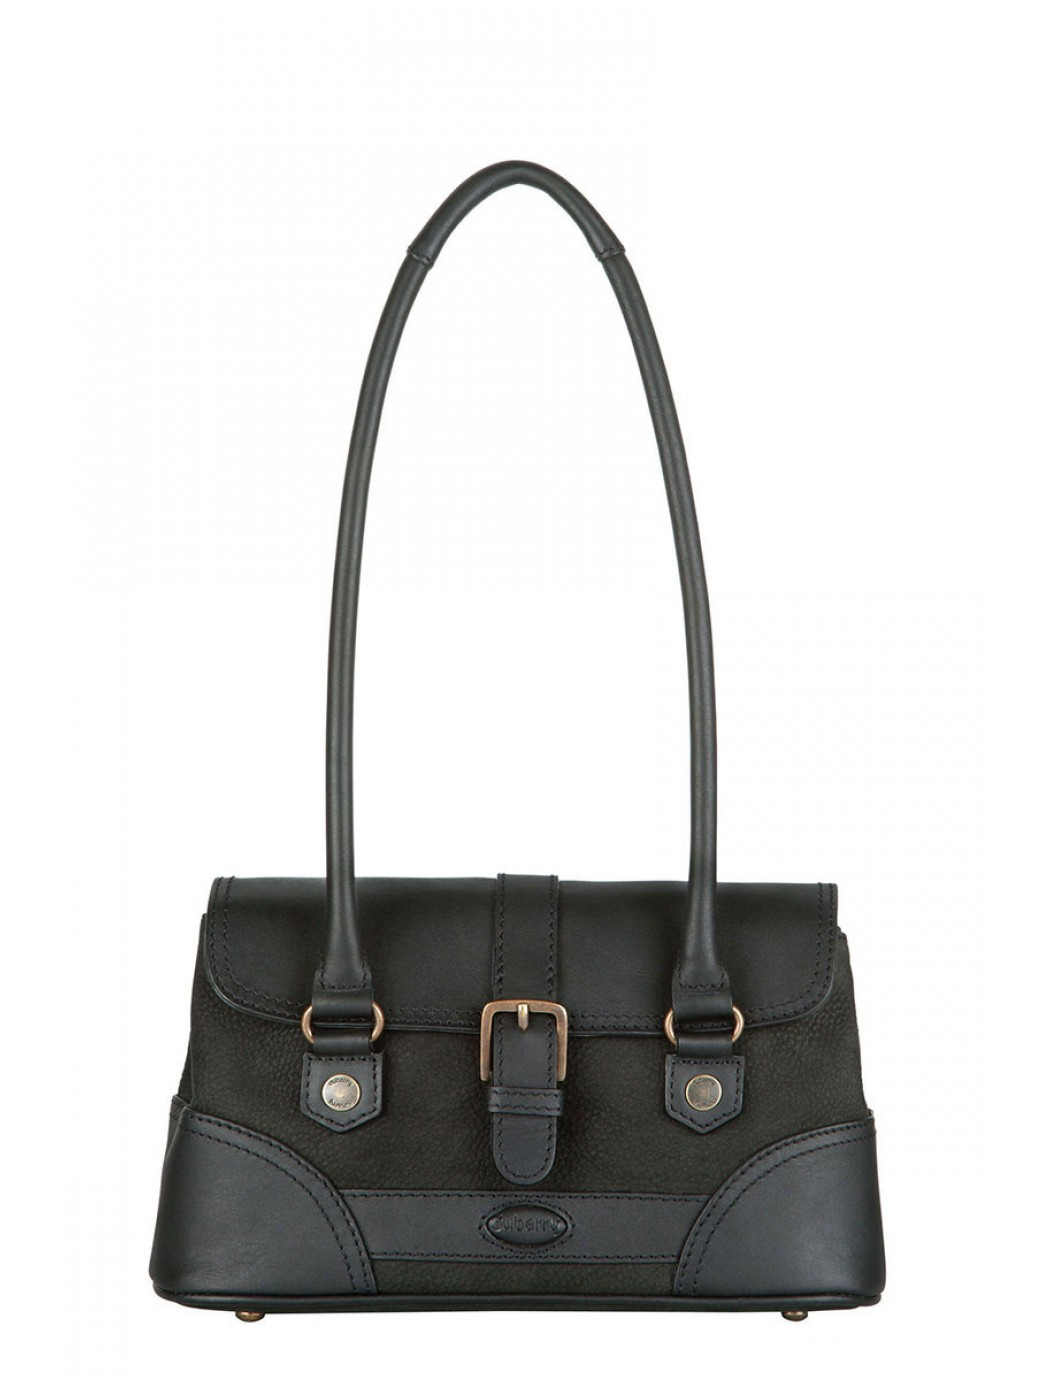 kenmare-womens-bags-luggage-black